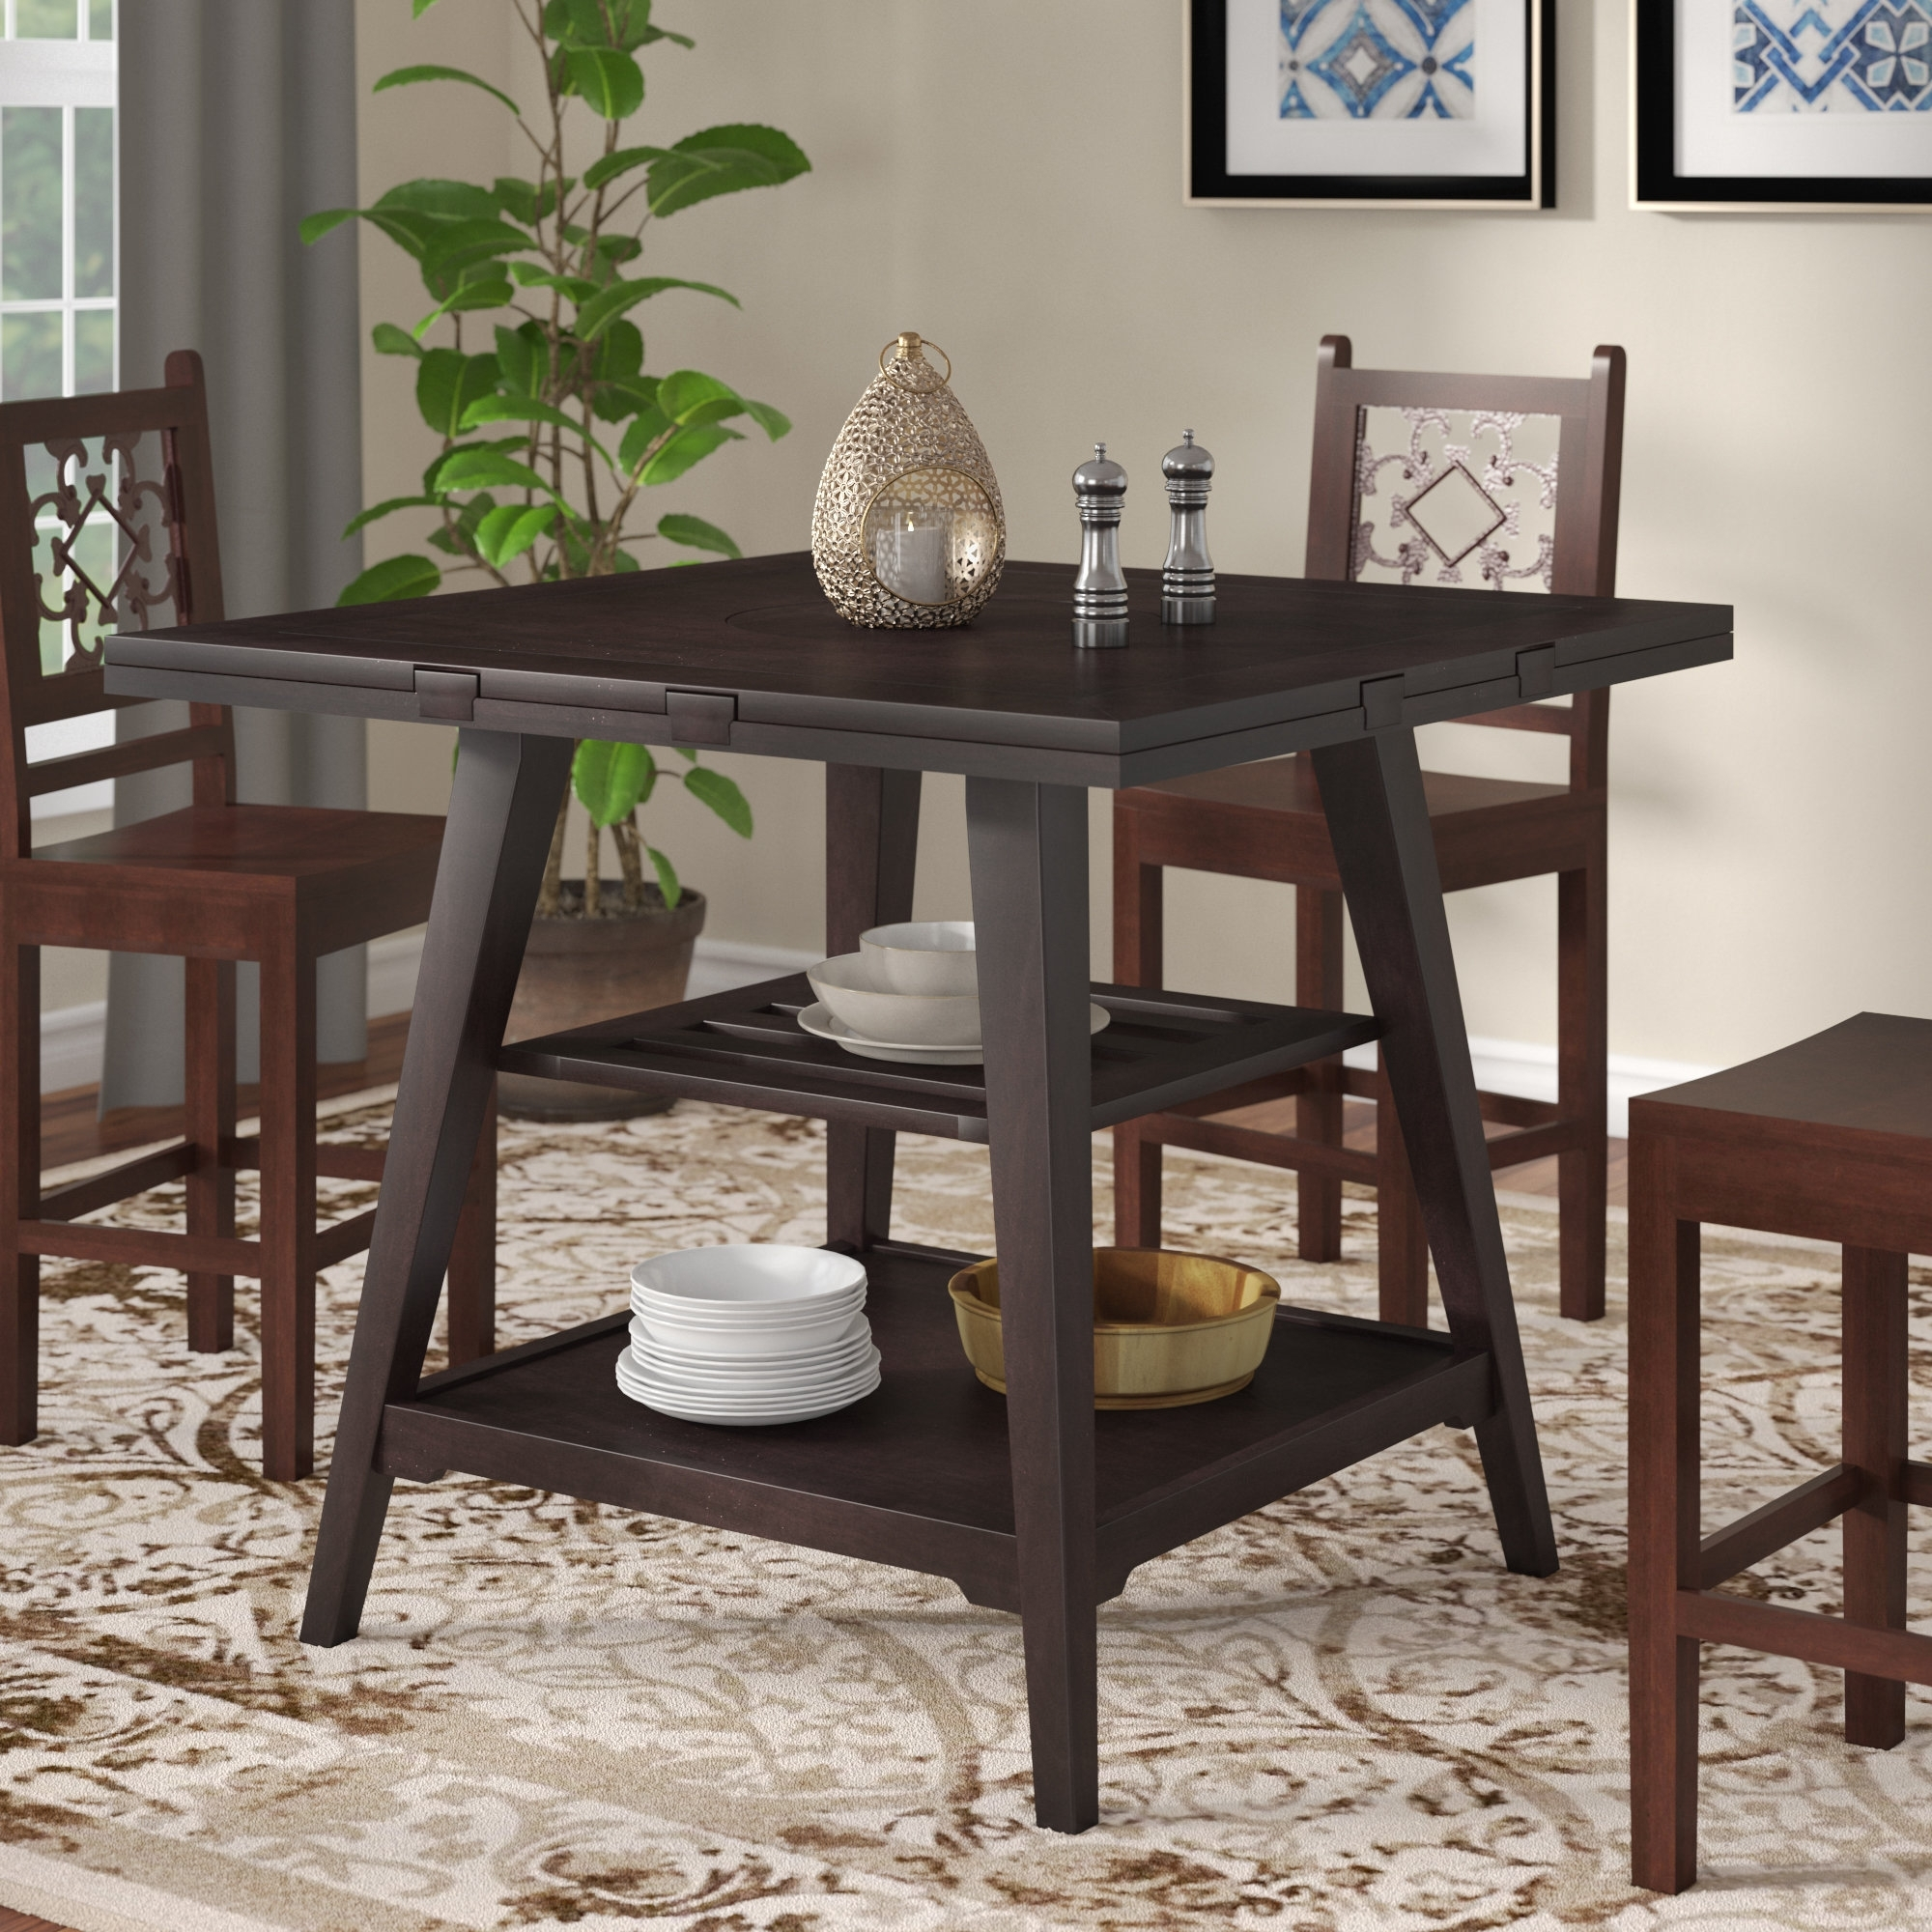 Wayfair Intended For Round Extendable Dining Tables And Chairs (View 21 of 25)